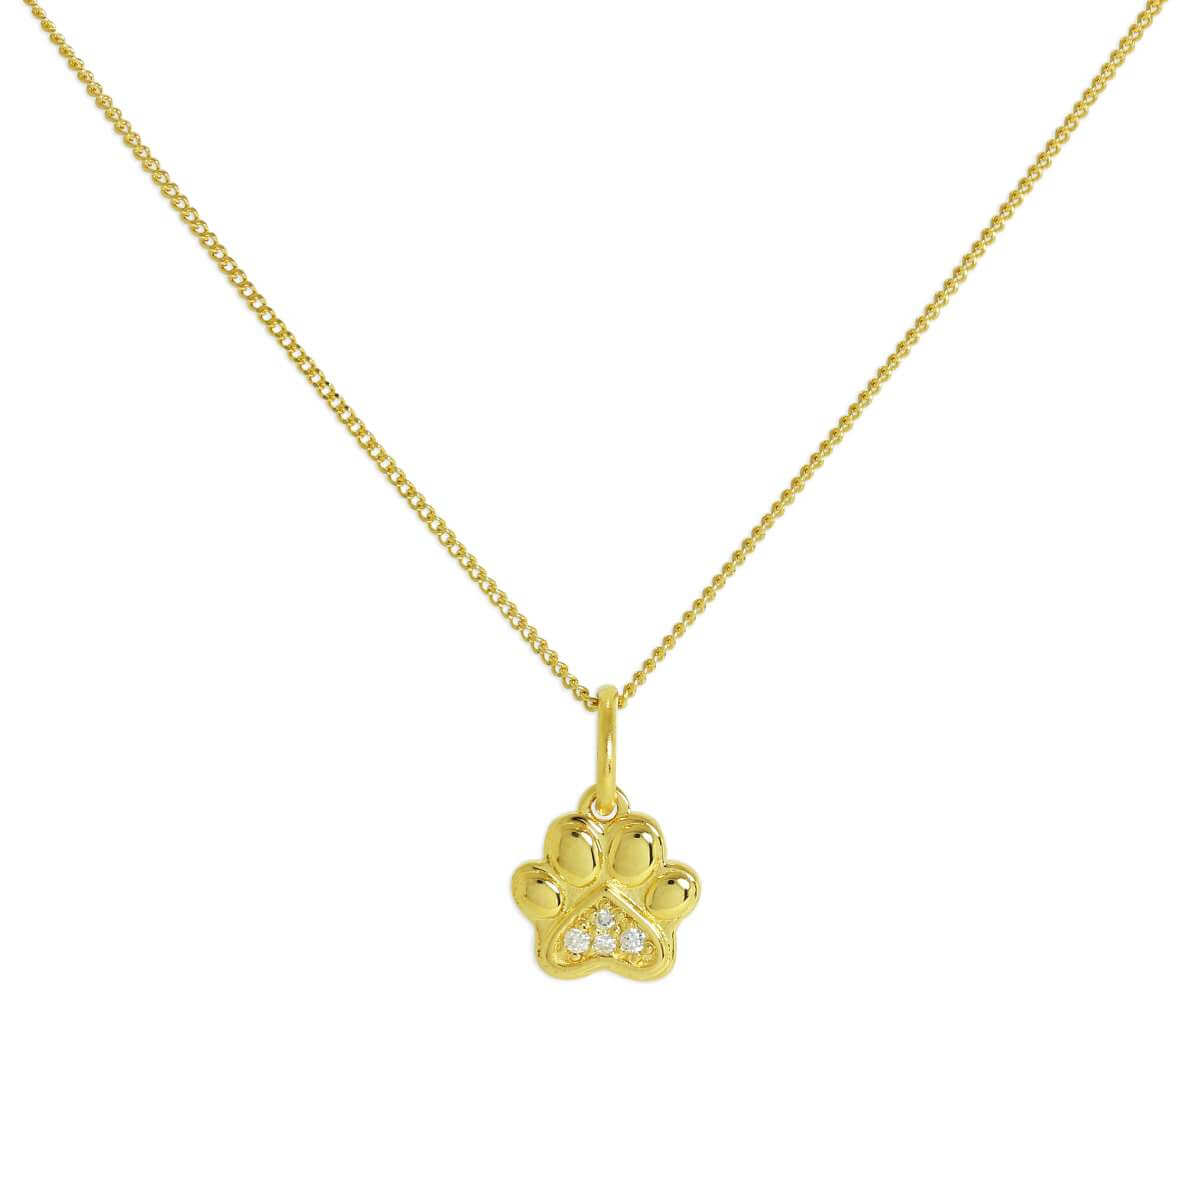 Gold Plated Sterling Silver & Genuine Diamond Pawprint Necklace 32 Inches Chain